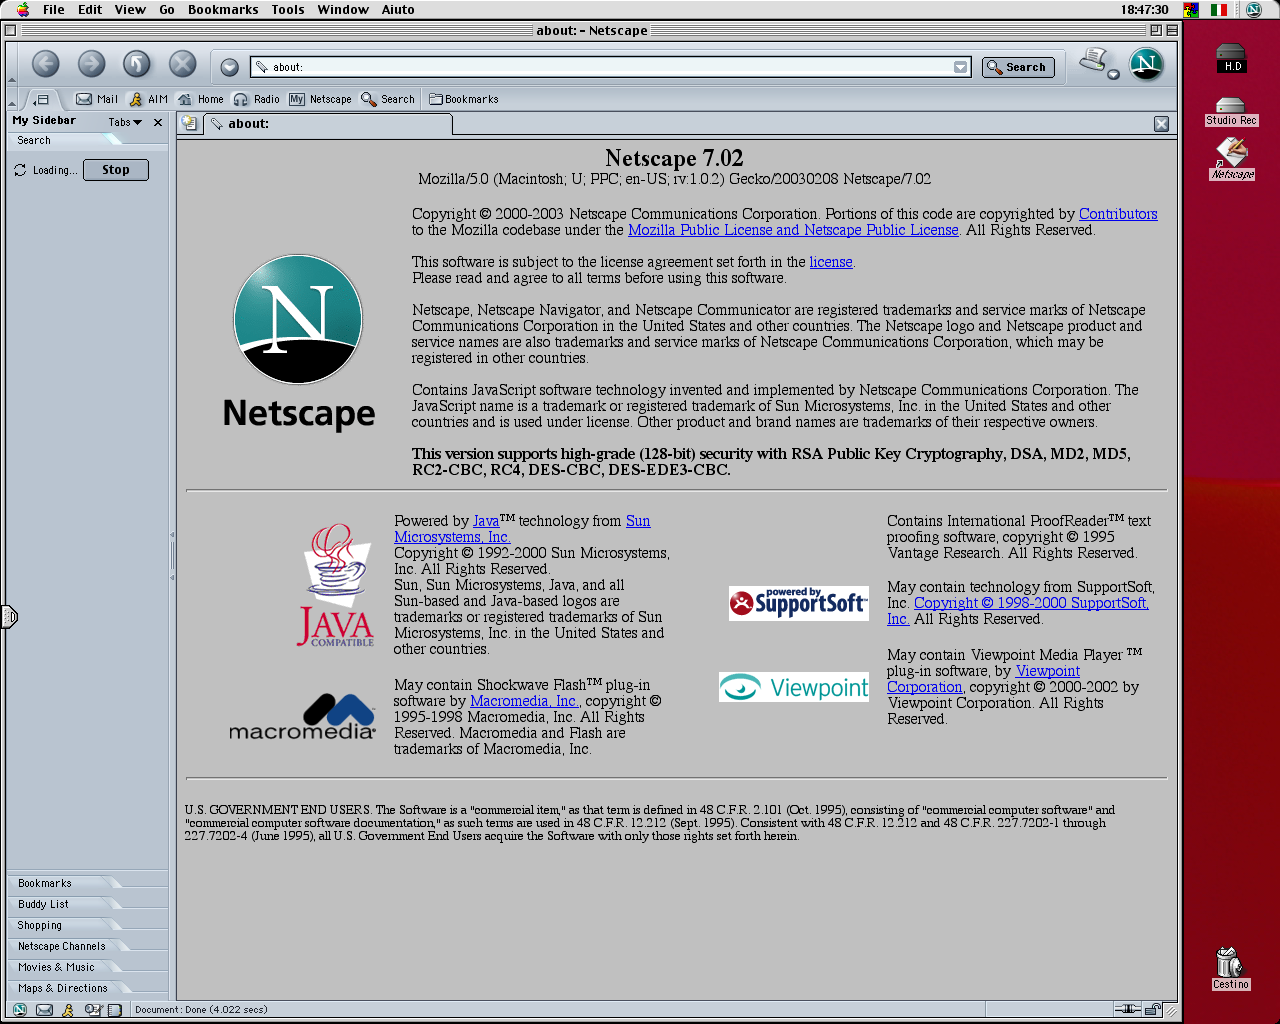 Netscape 7.02 for Mac About Screen (2003)